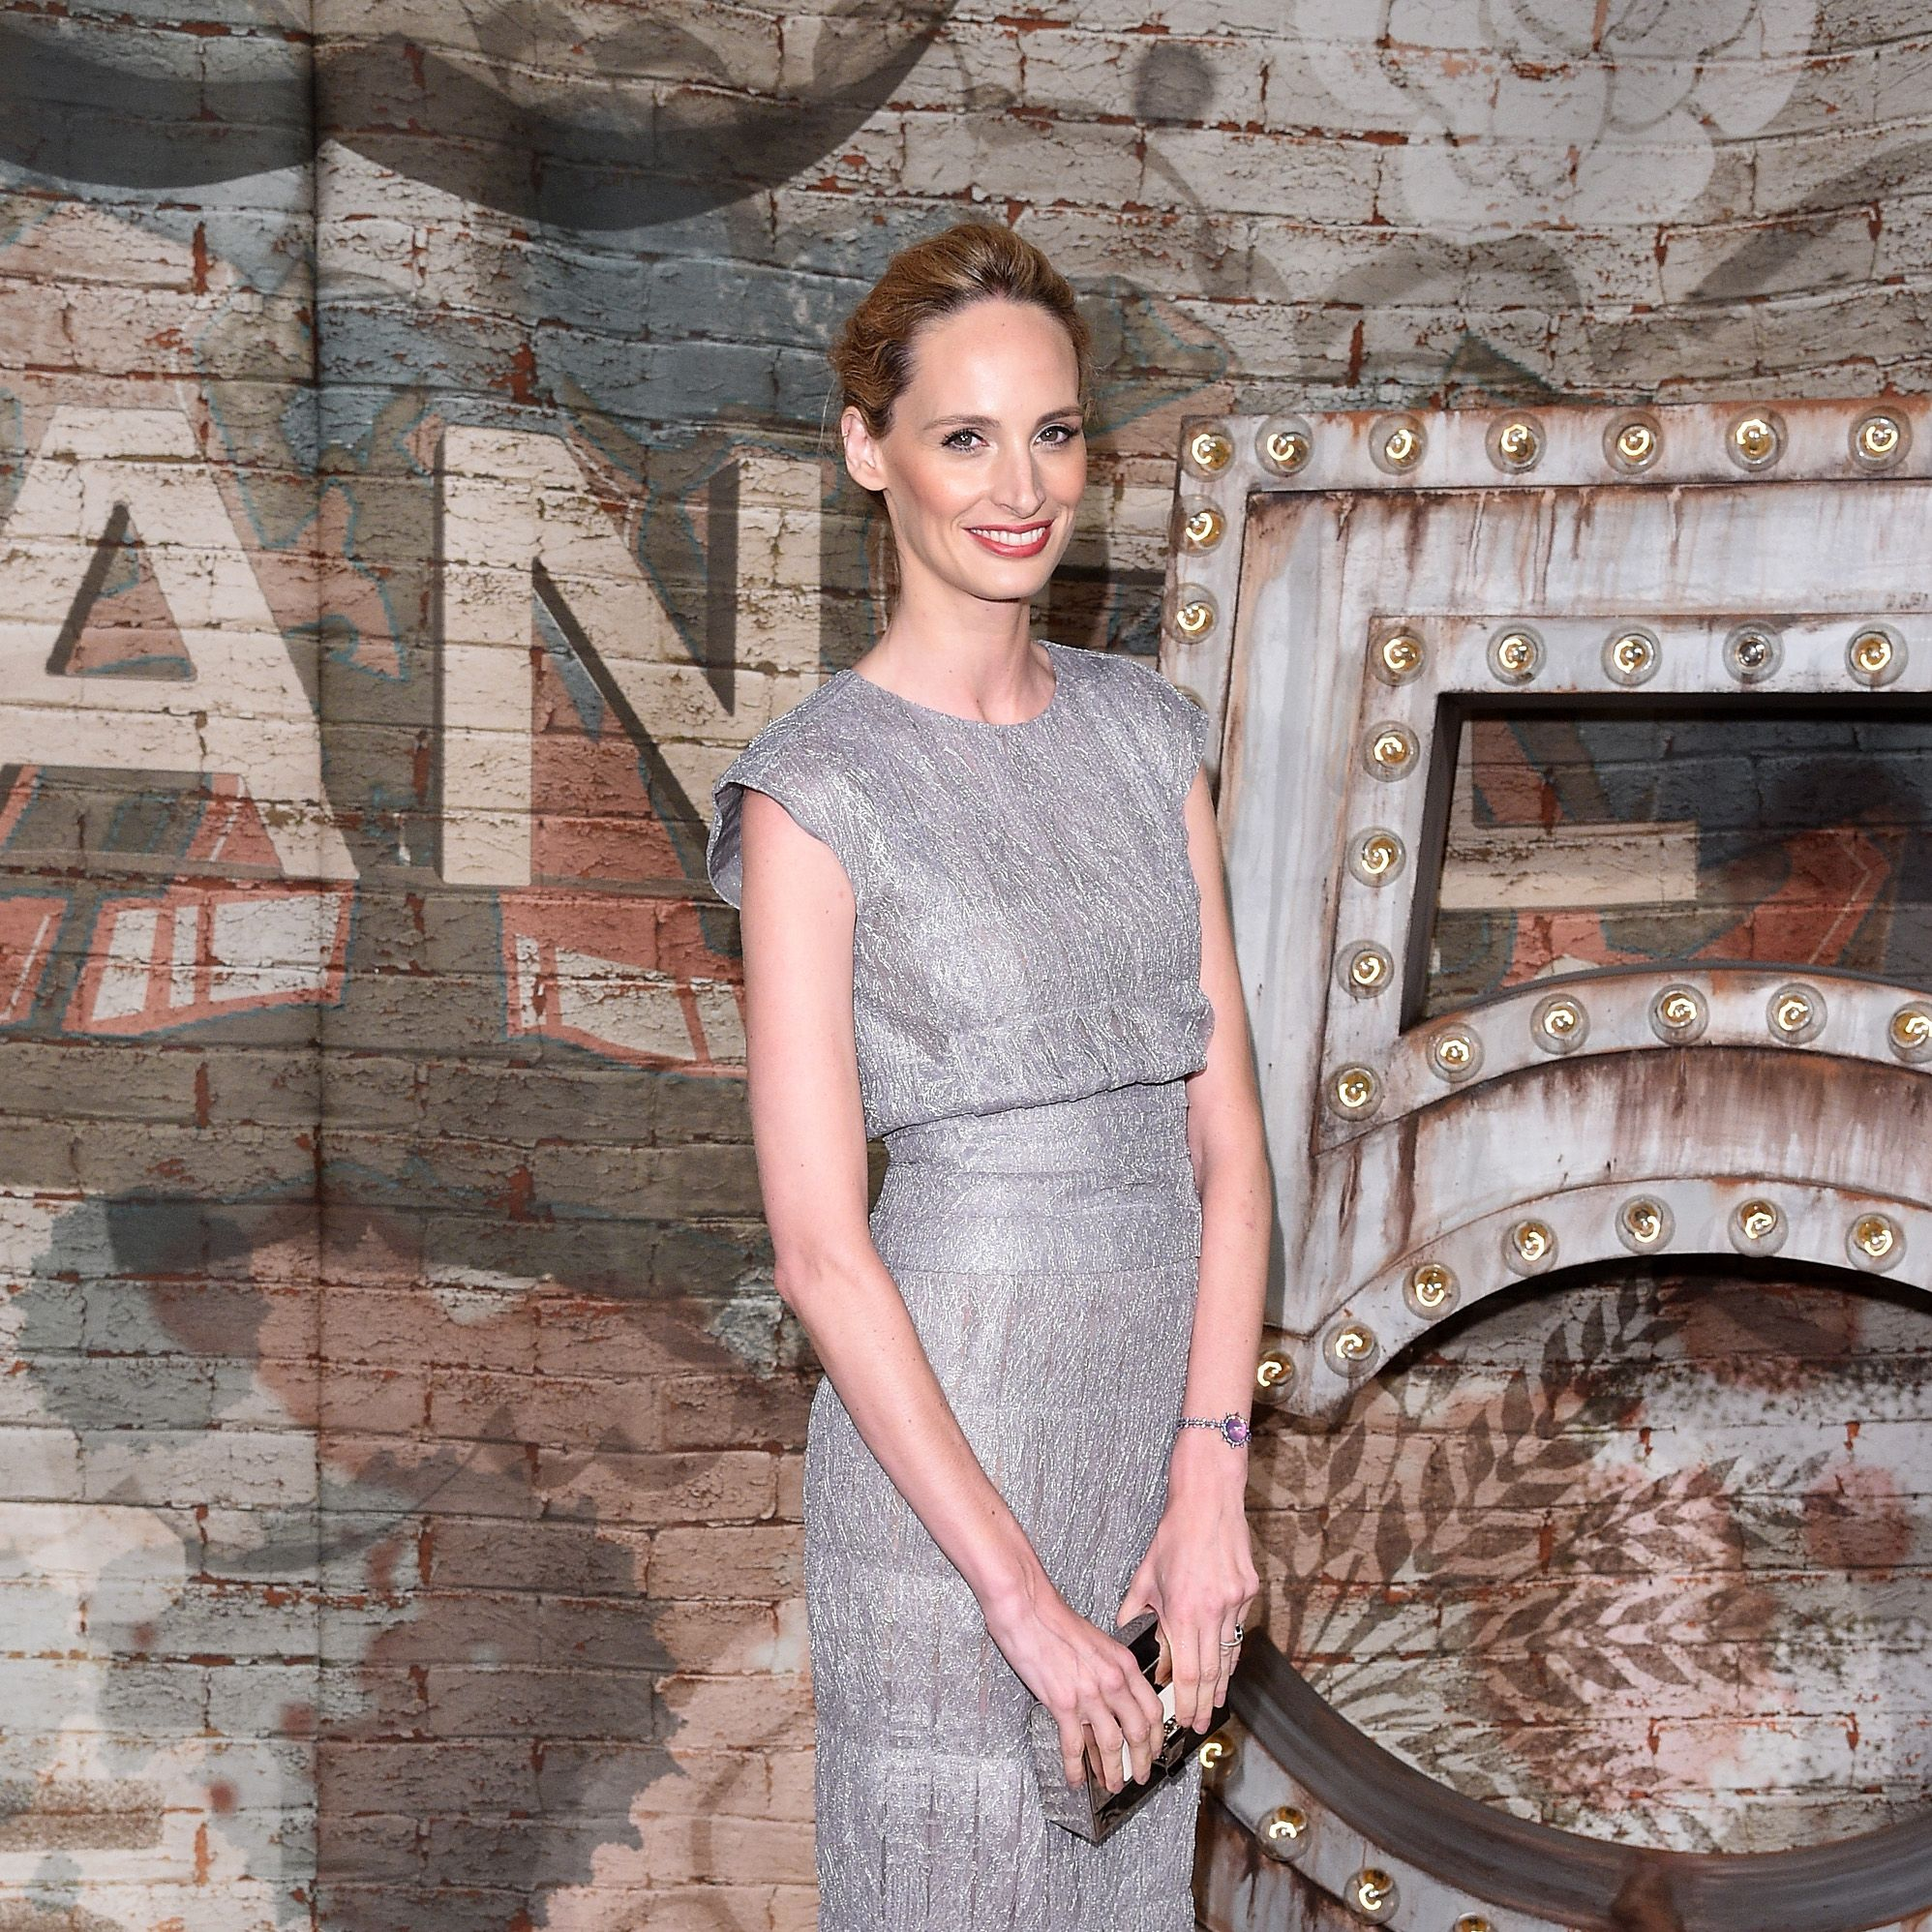 NEW YORK, NY - OCTOBER 13:  Vogue Editor Lauren Santo Domingo attends the CHANEL Dinner Celebrating N°5 THE FILM by Baz Luhrmann on October 13, 2014 in New York City.  (Photo by Andrew H. Walker/Getty Images for CHANEL)